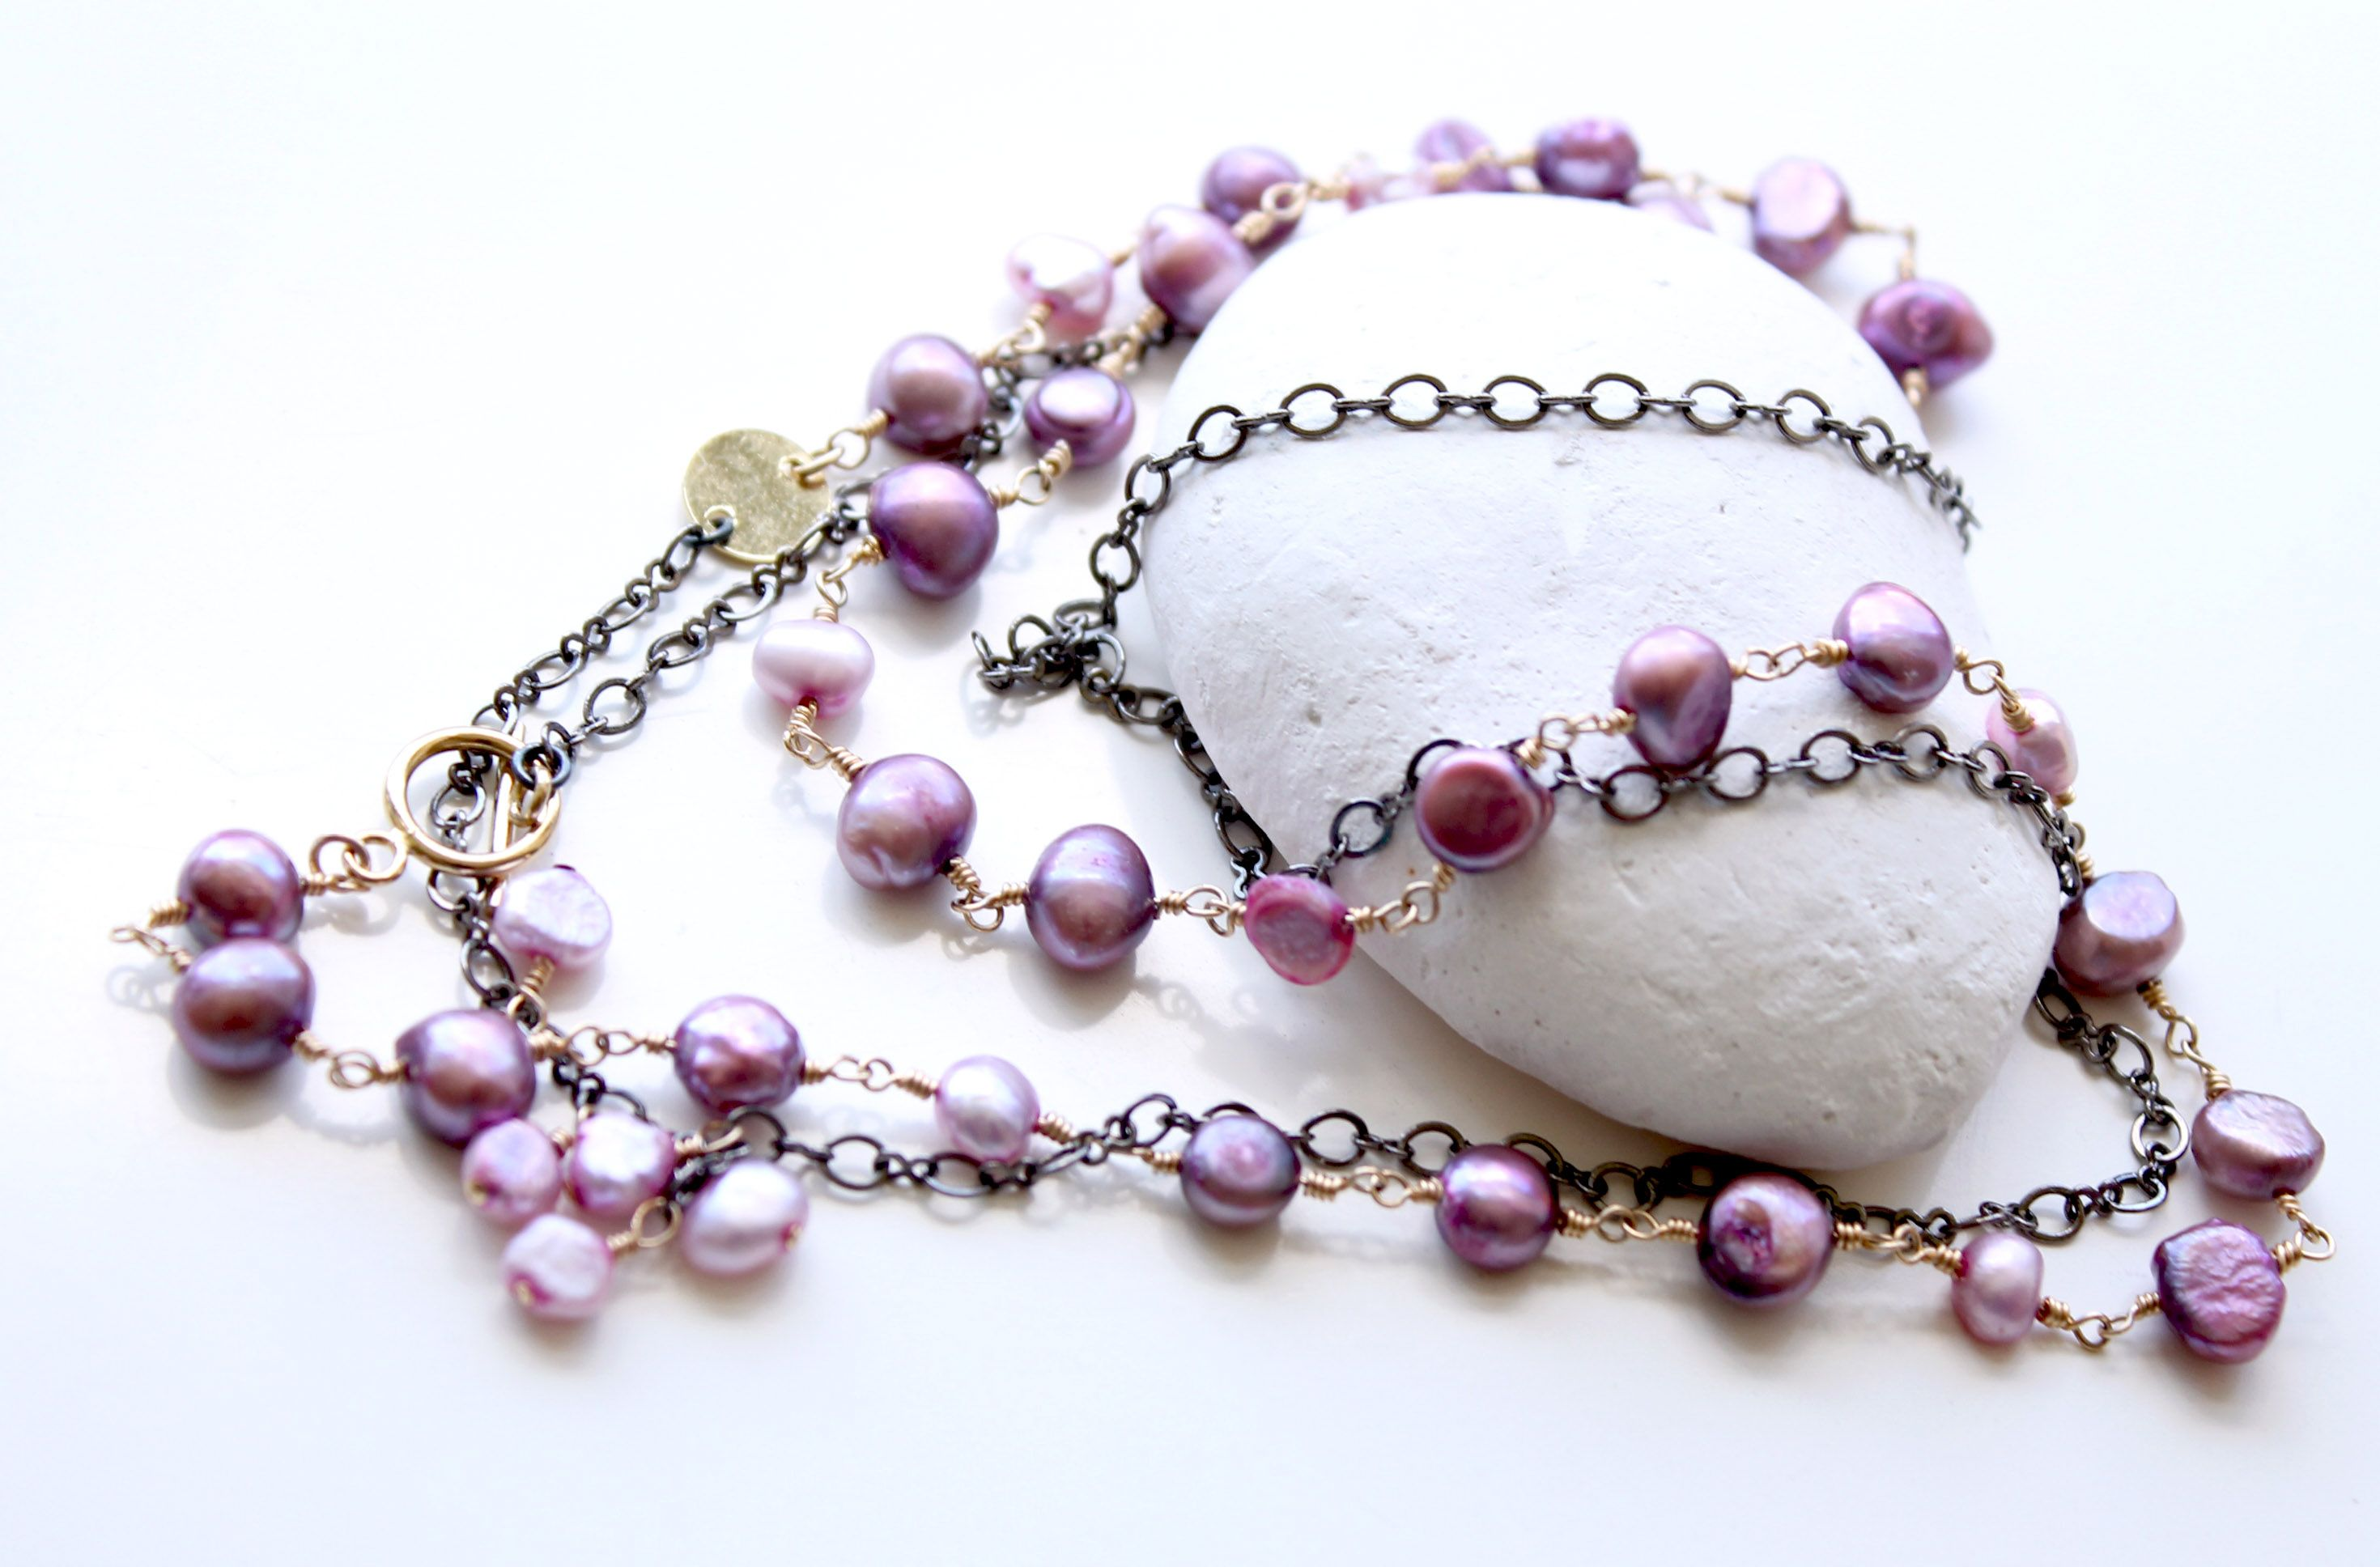 Long mixed metal convertible necklace/bracelet. Gold fill, gun metal with radiant orchid pearl nuggets. Asymmetrical Necklace converts into a bracelet. #layeringnecklace #longnecklace #pearls #mixedmetal